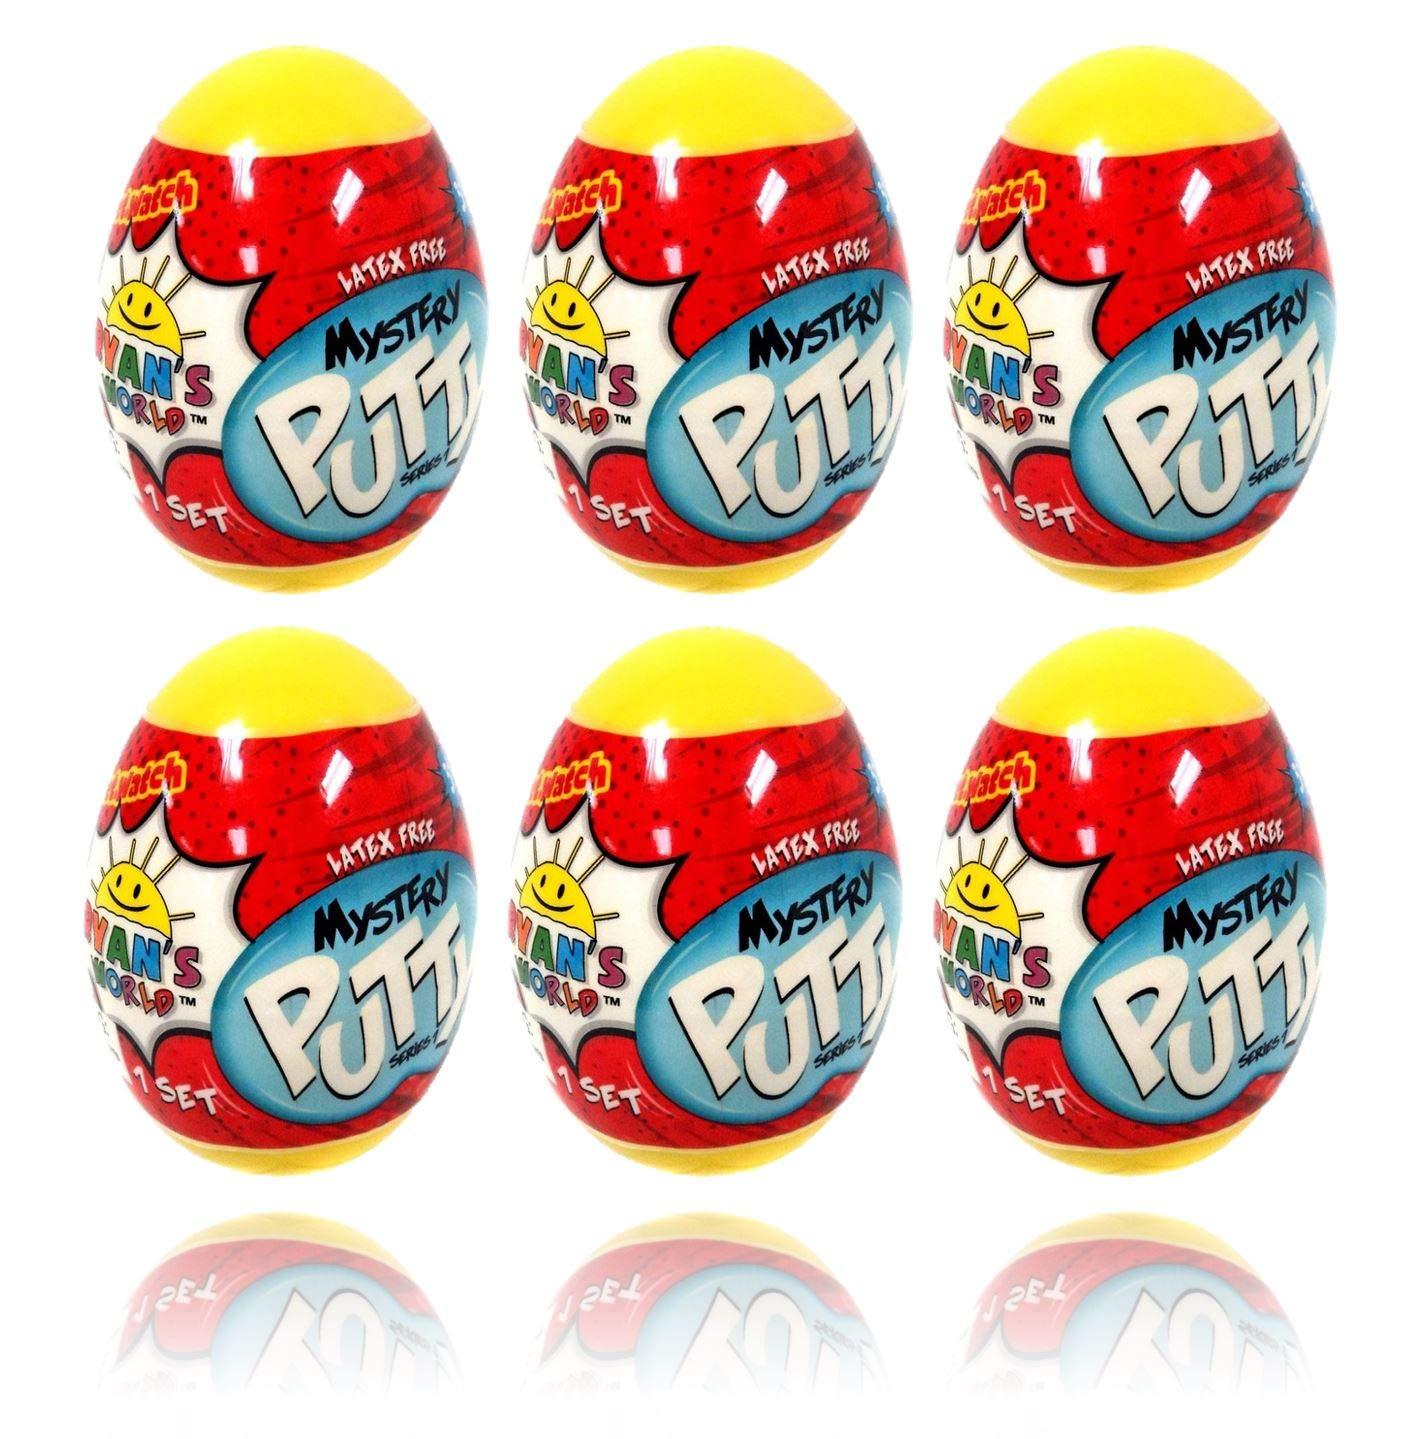 Ryan's World Mystery Putty 6 Pack (6 Small Eggs)